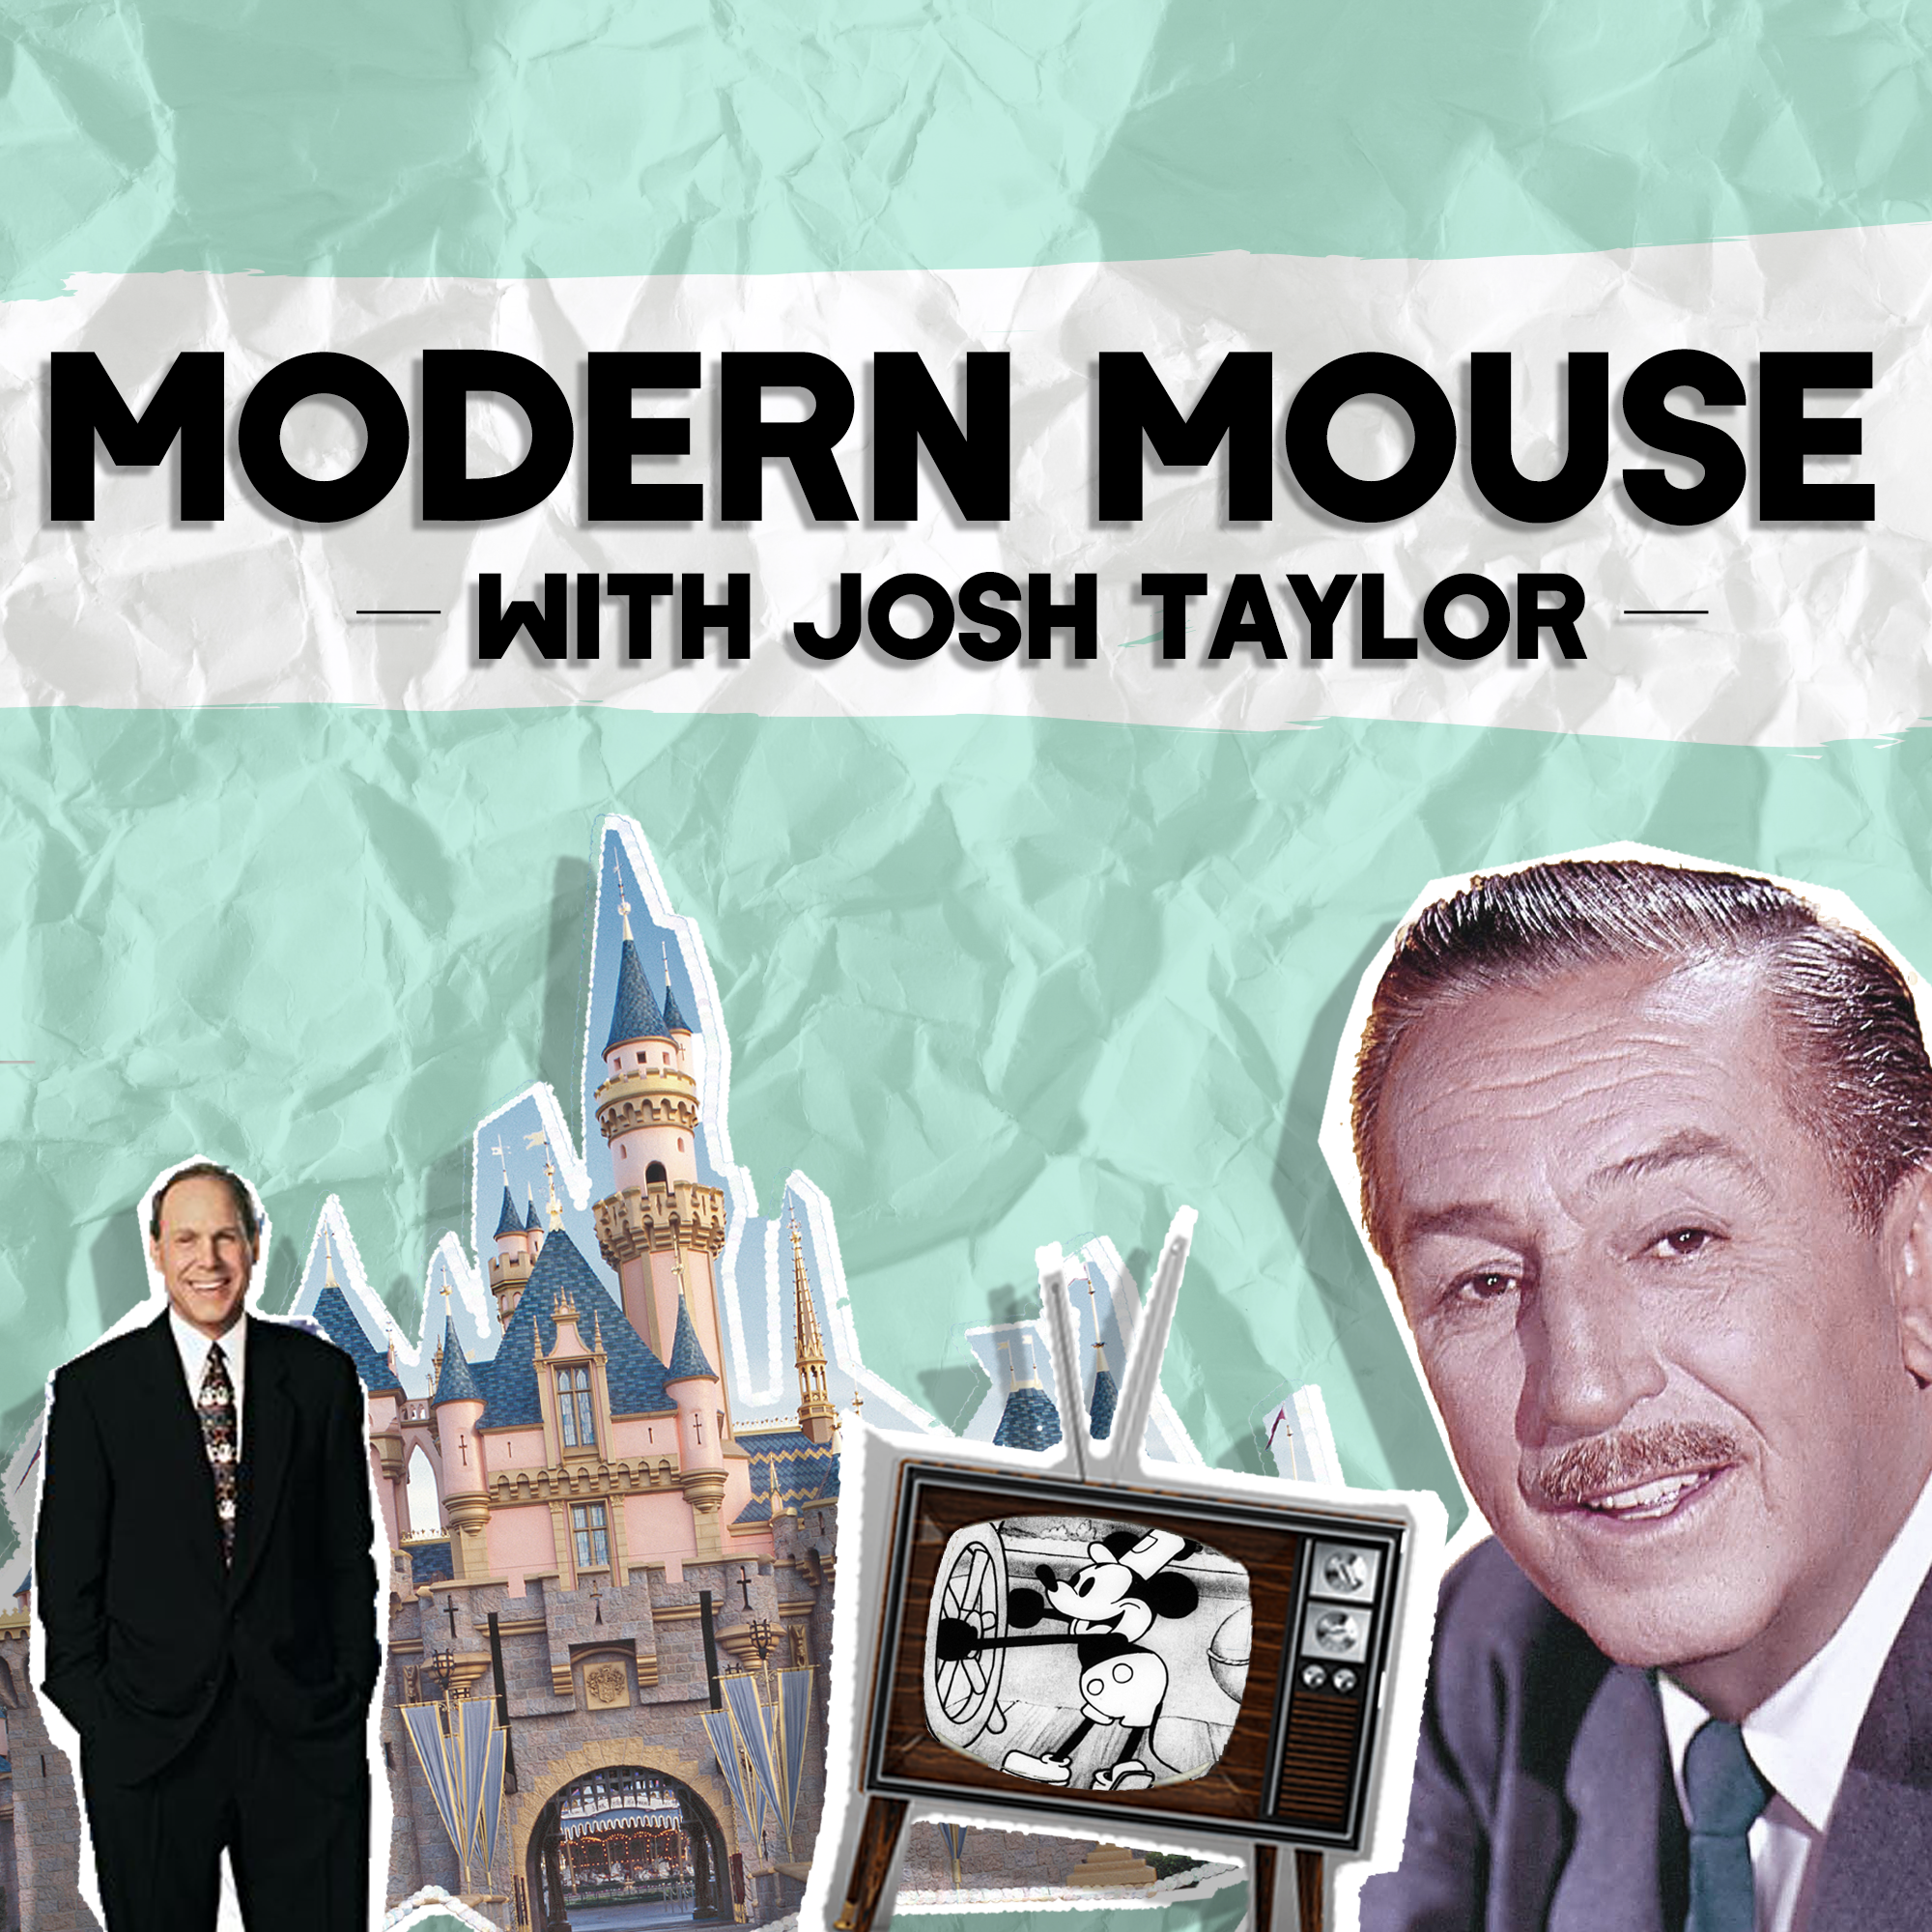 Modern Mouse  - Hosted by Josh Taylor as he looks at the less magical side of life through the most magical lens possible, the Walt Disney company.